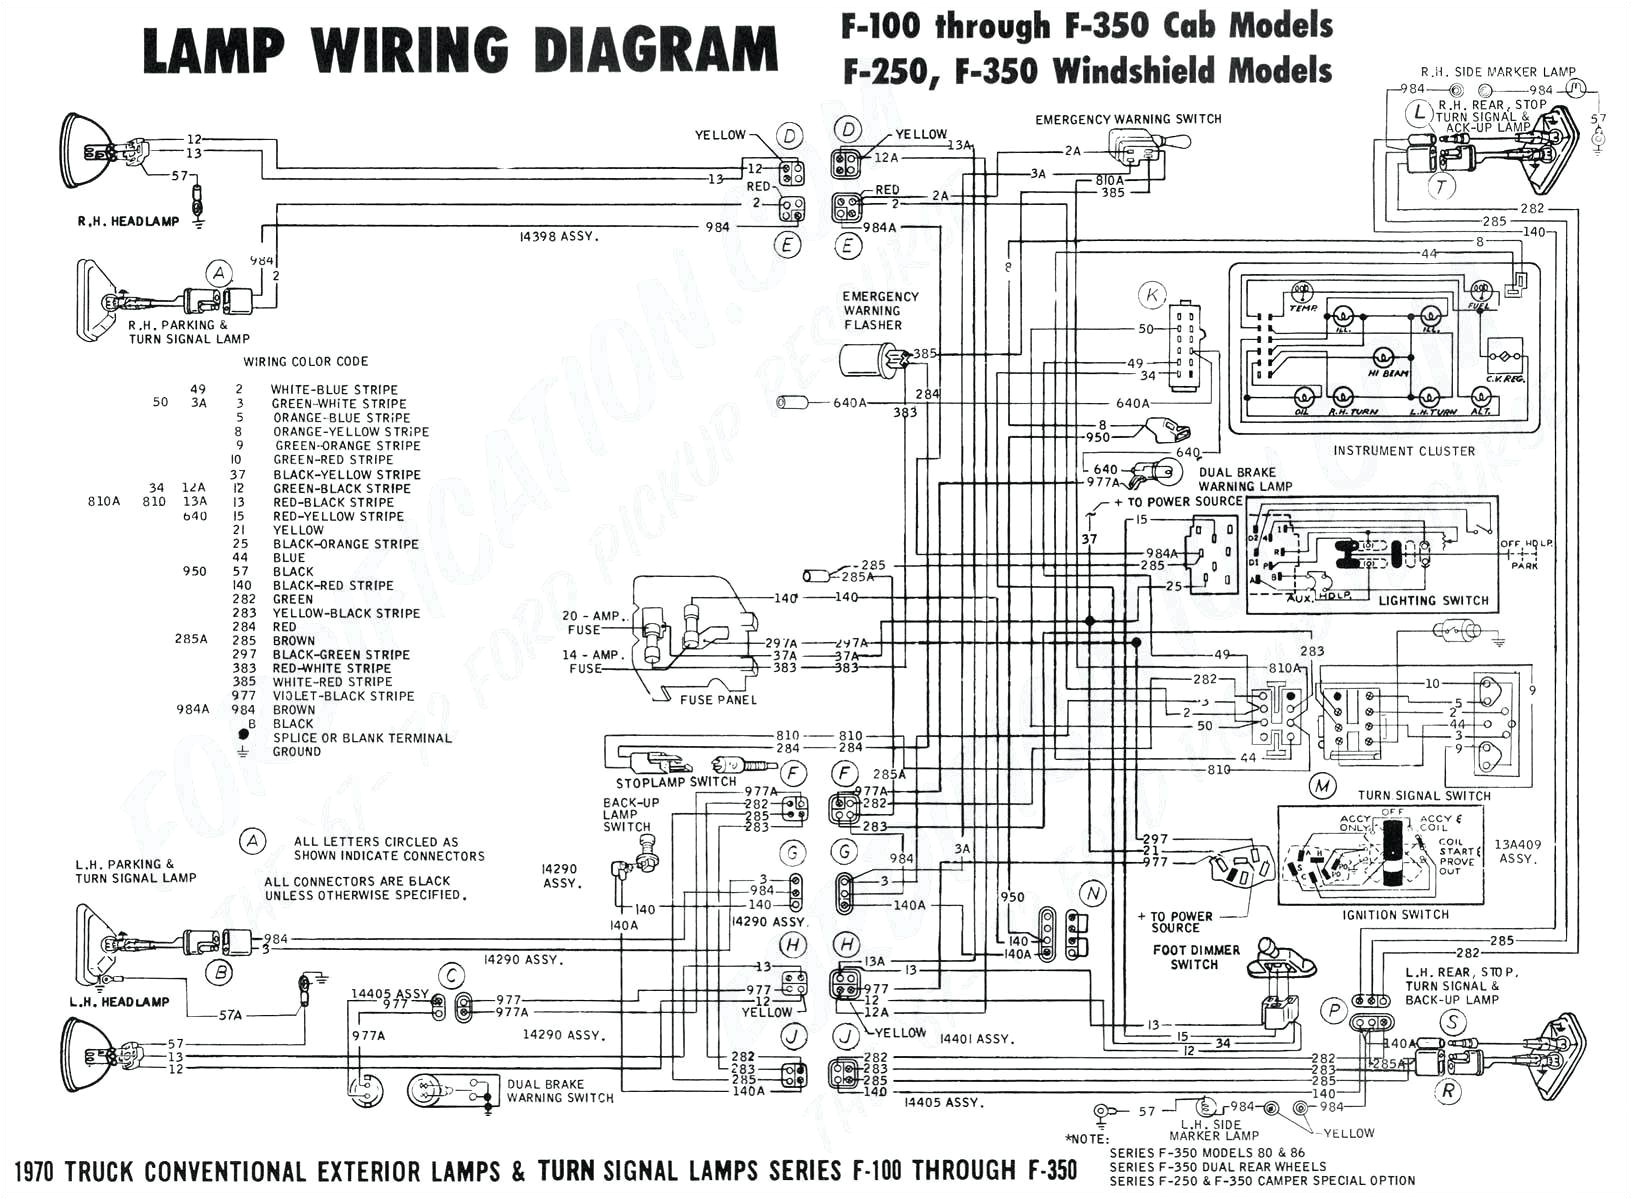 wiring diagram further fuel pump relay along with simple alarm electrical house wiring circuit further dimmer switch circuit diagram